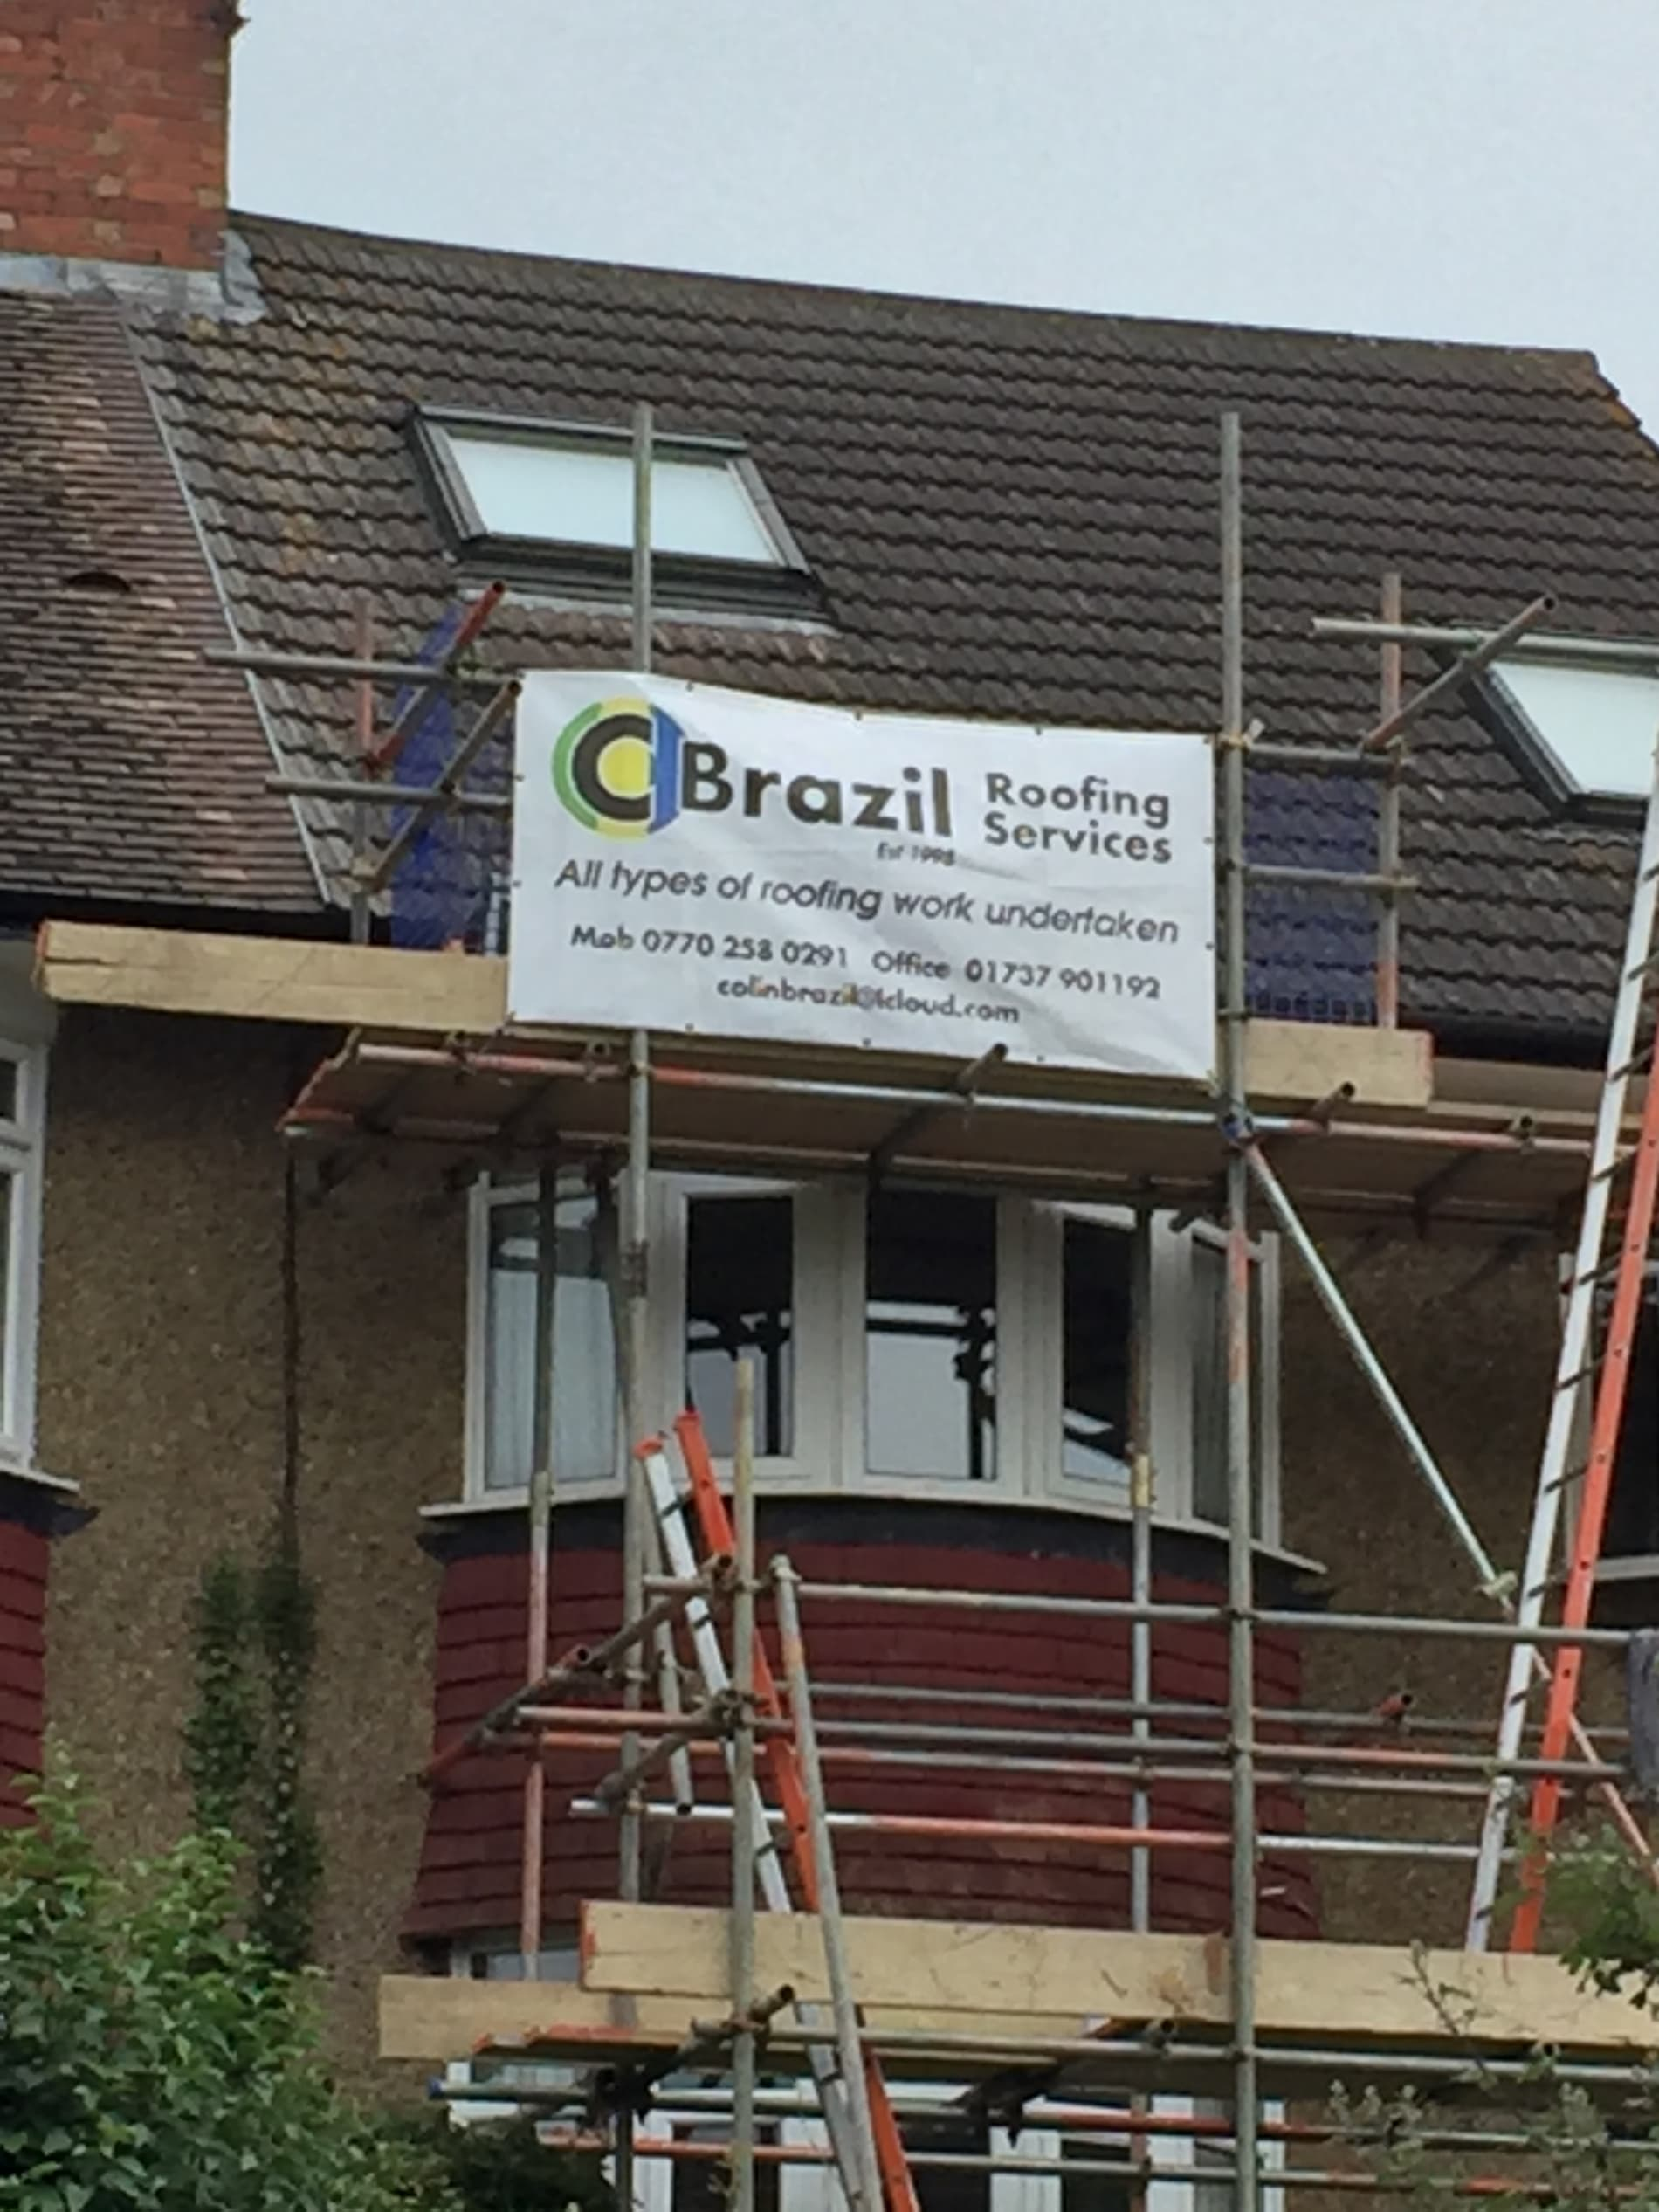 C Brazil Roofing Services